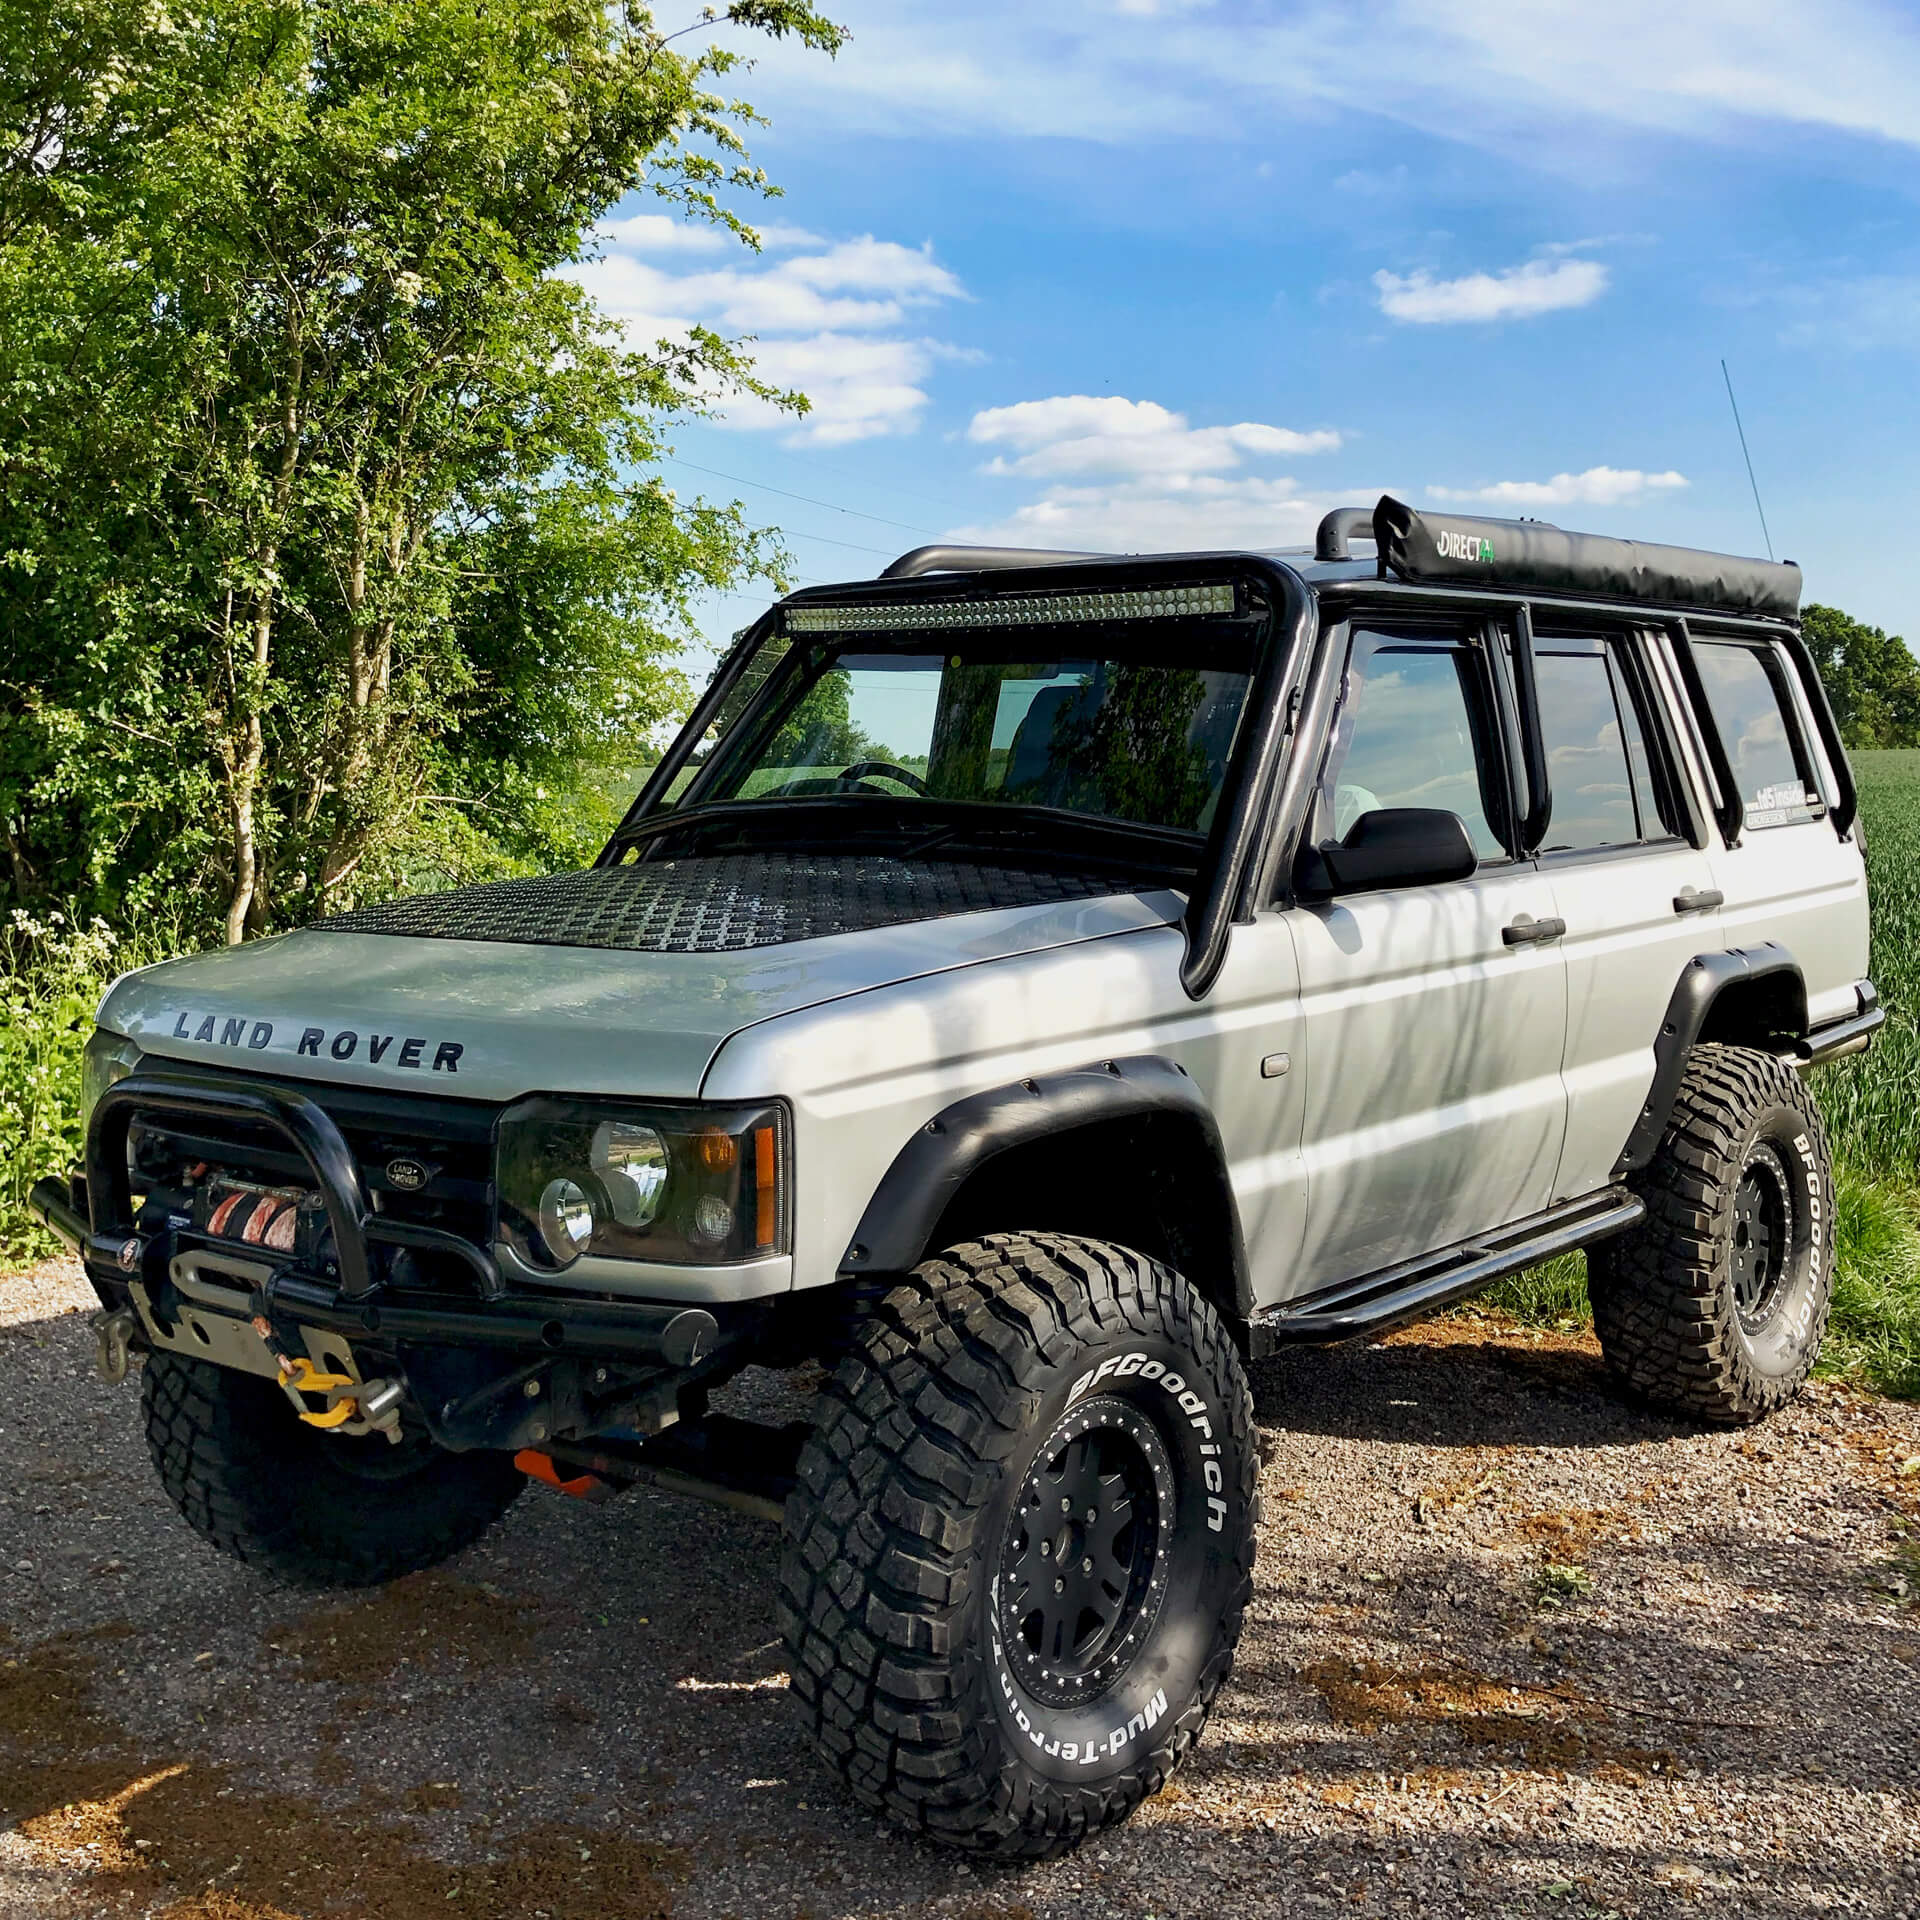 Lifted Land Rover Discovery 2 on 35 inch tires